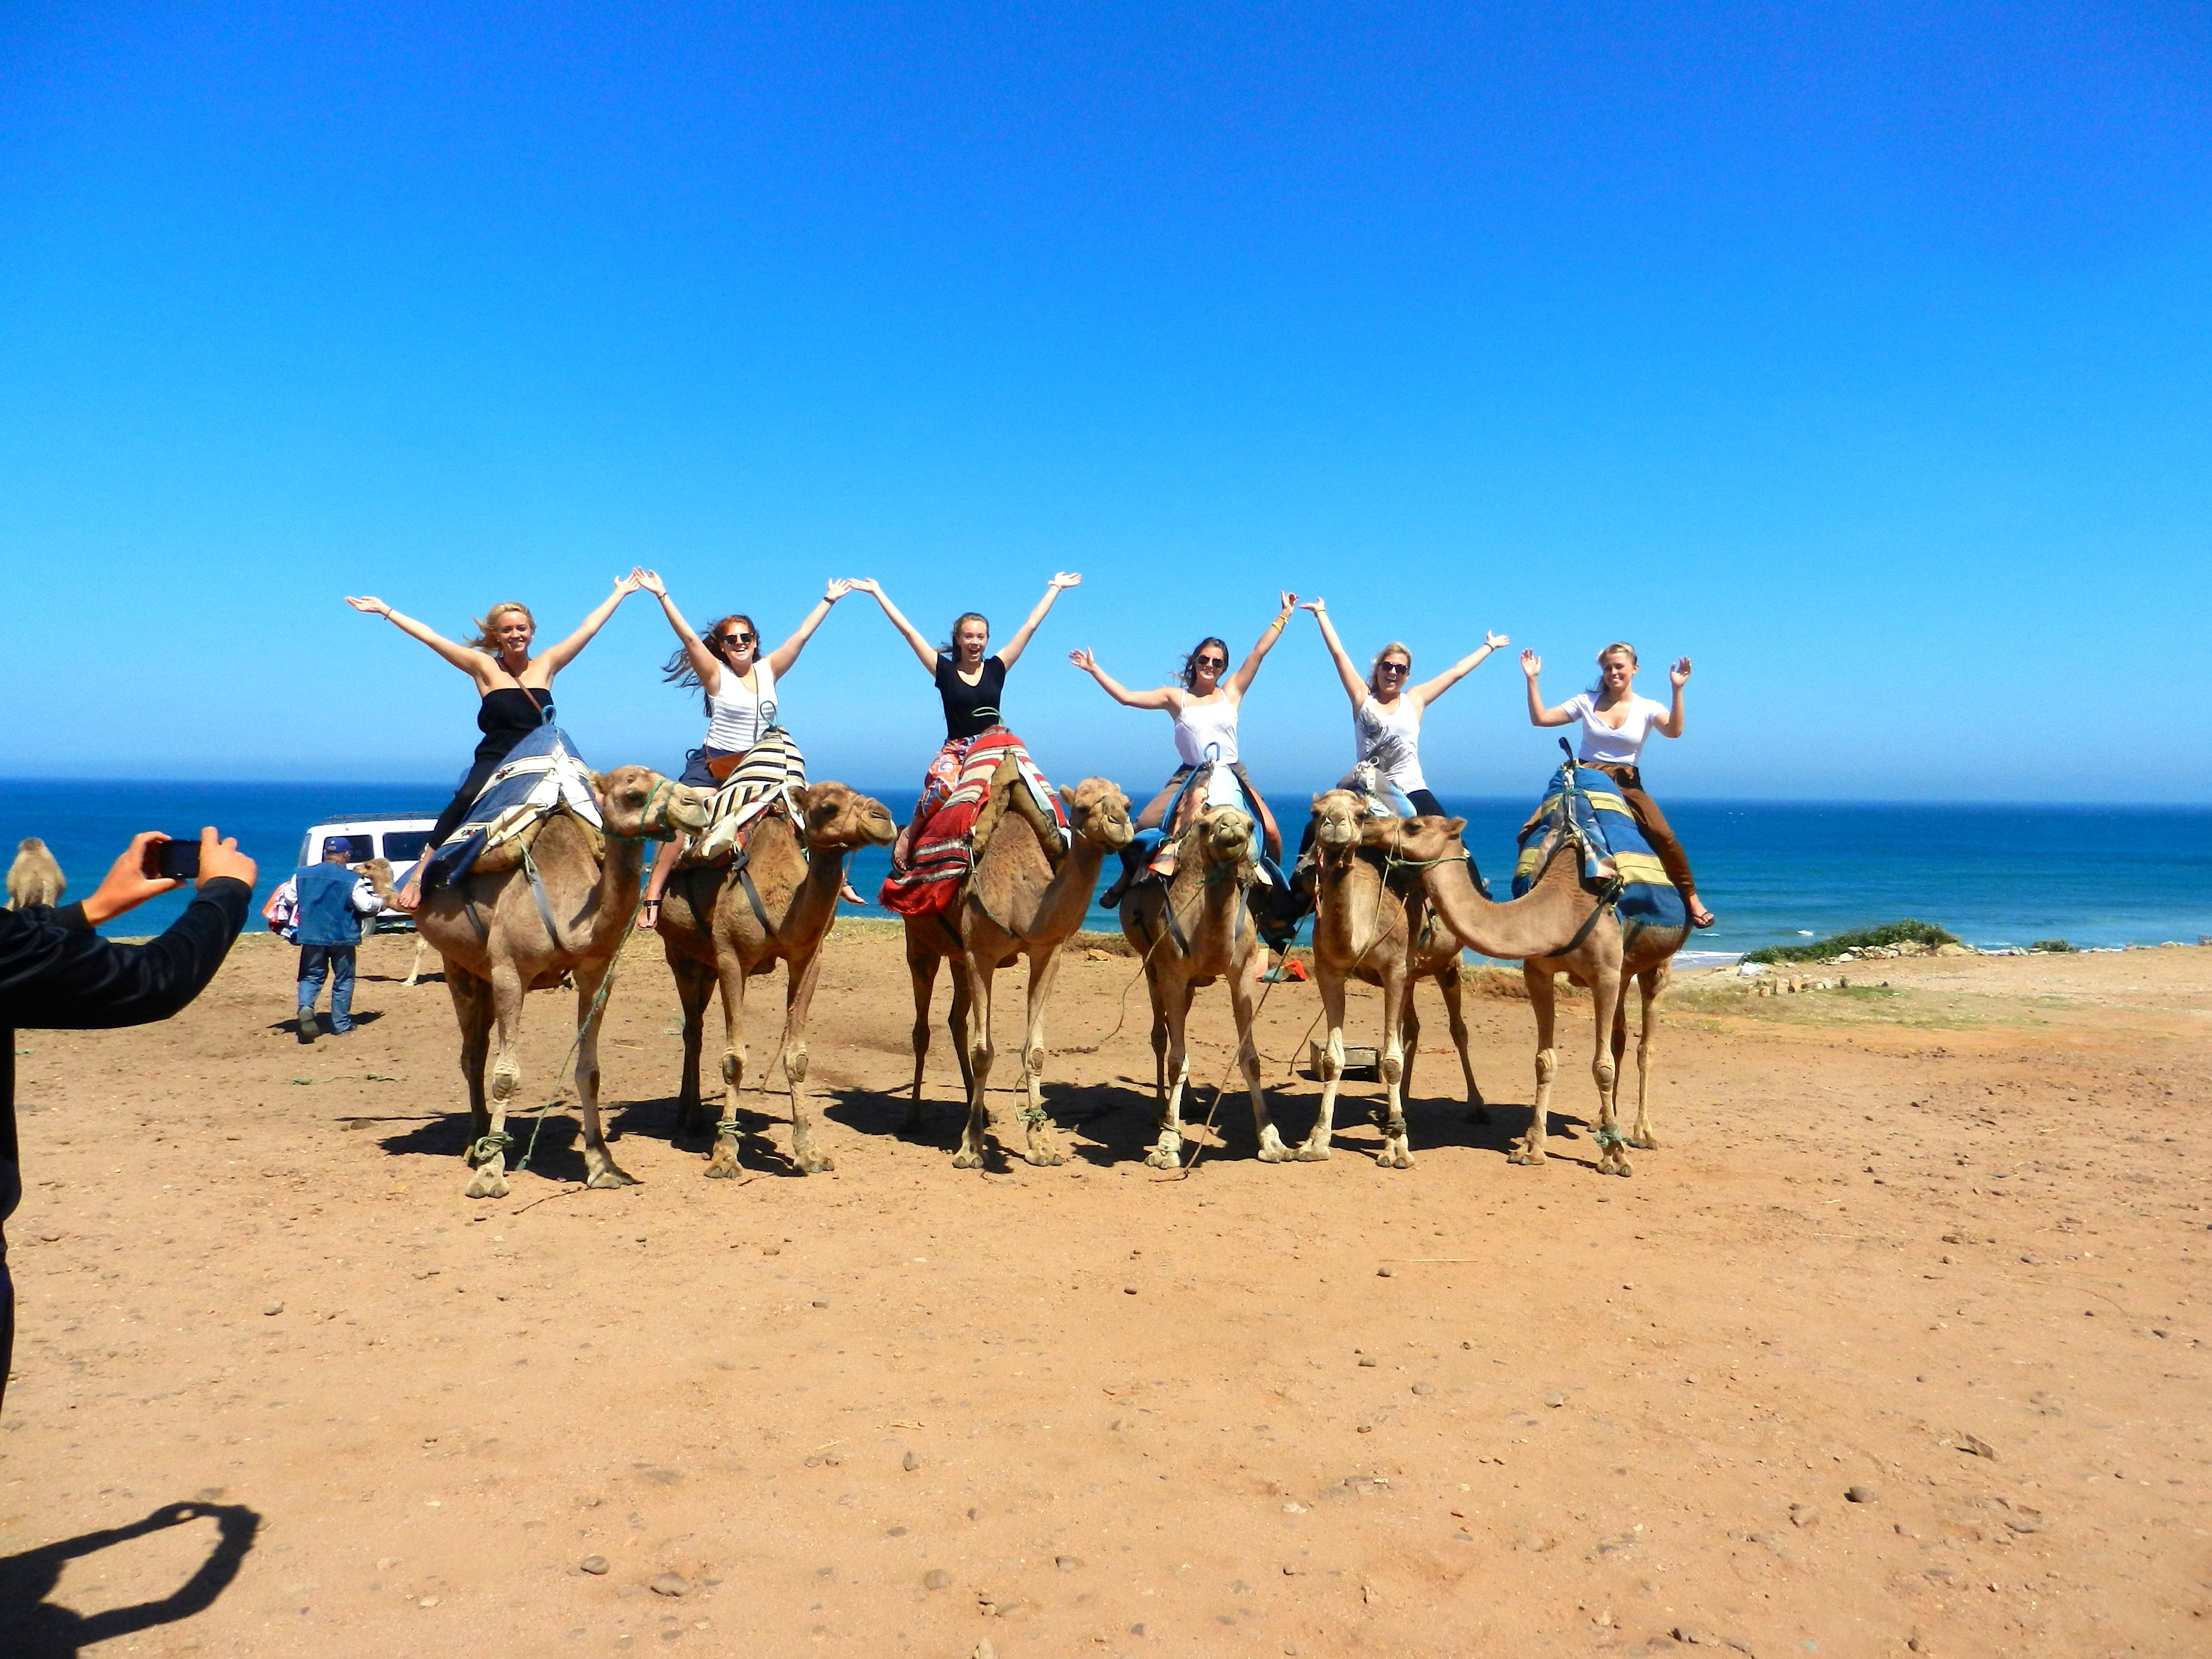 Me and my study abroad friends crossing off another thing on my bucket list. Riding camels in Morocco!